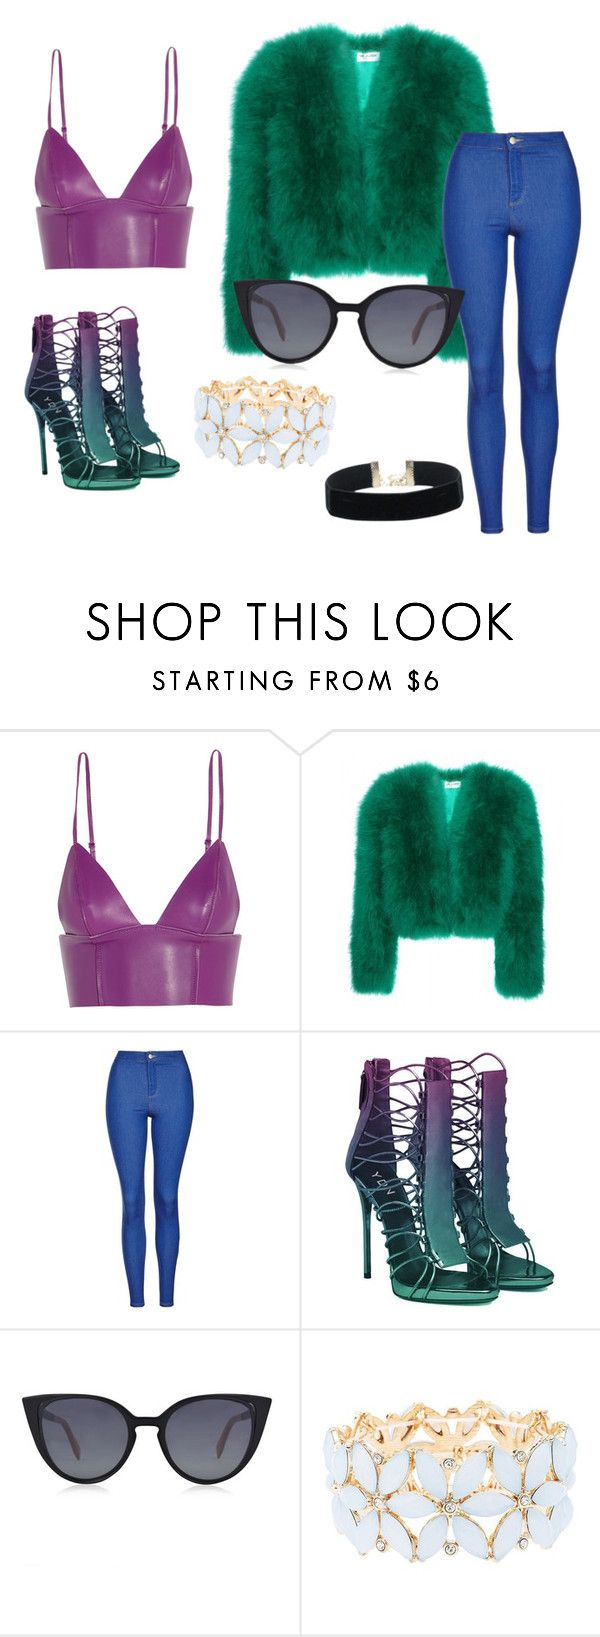 """""""60s coming back"""" by rnickleski ❤ liked on Polyvore featuring T By Alexander Wang, Yves Saint Laurent, Topshop, Fendi, Charlotte Russe and cute"""